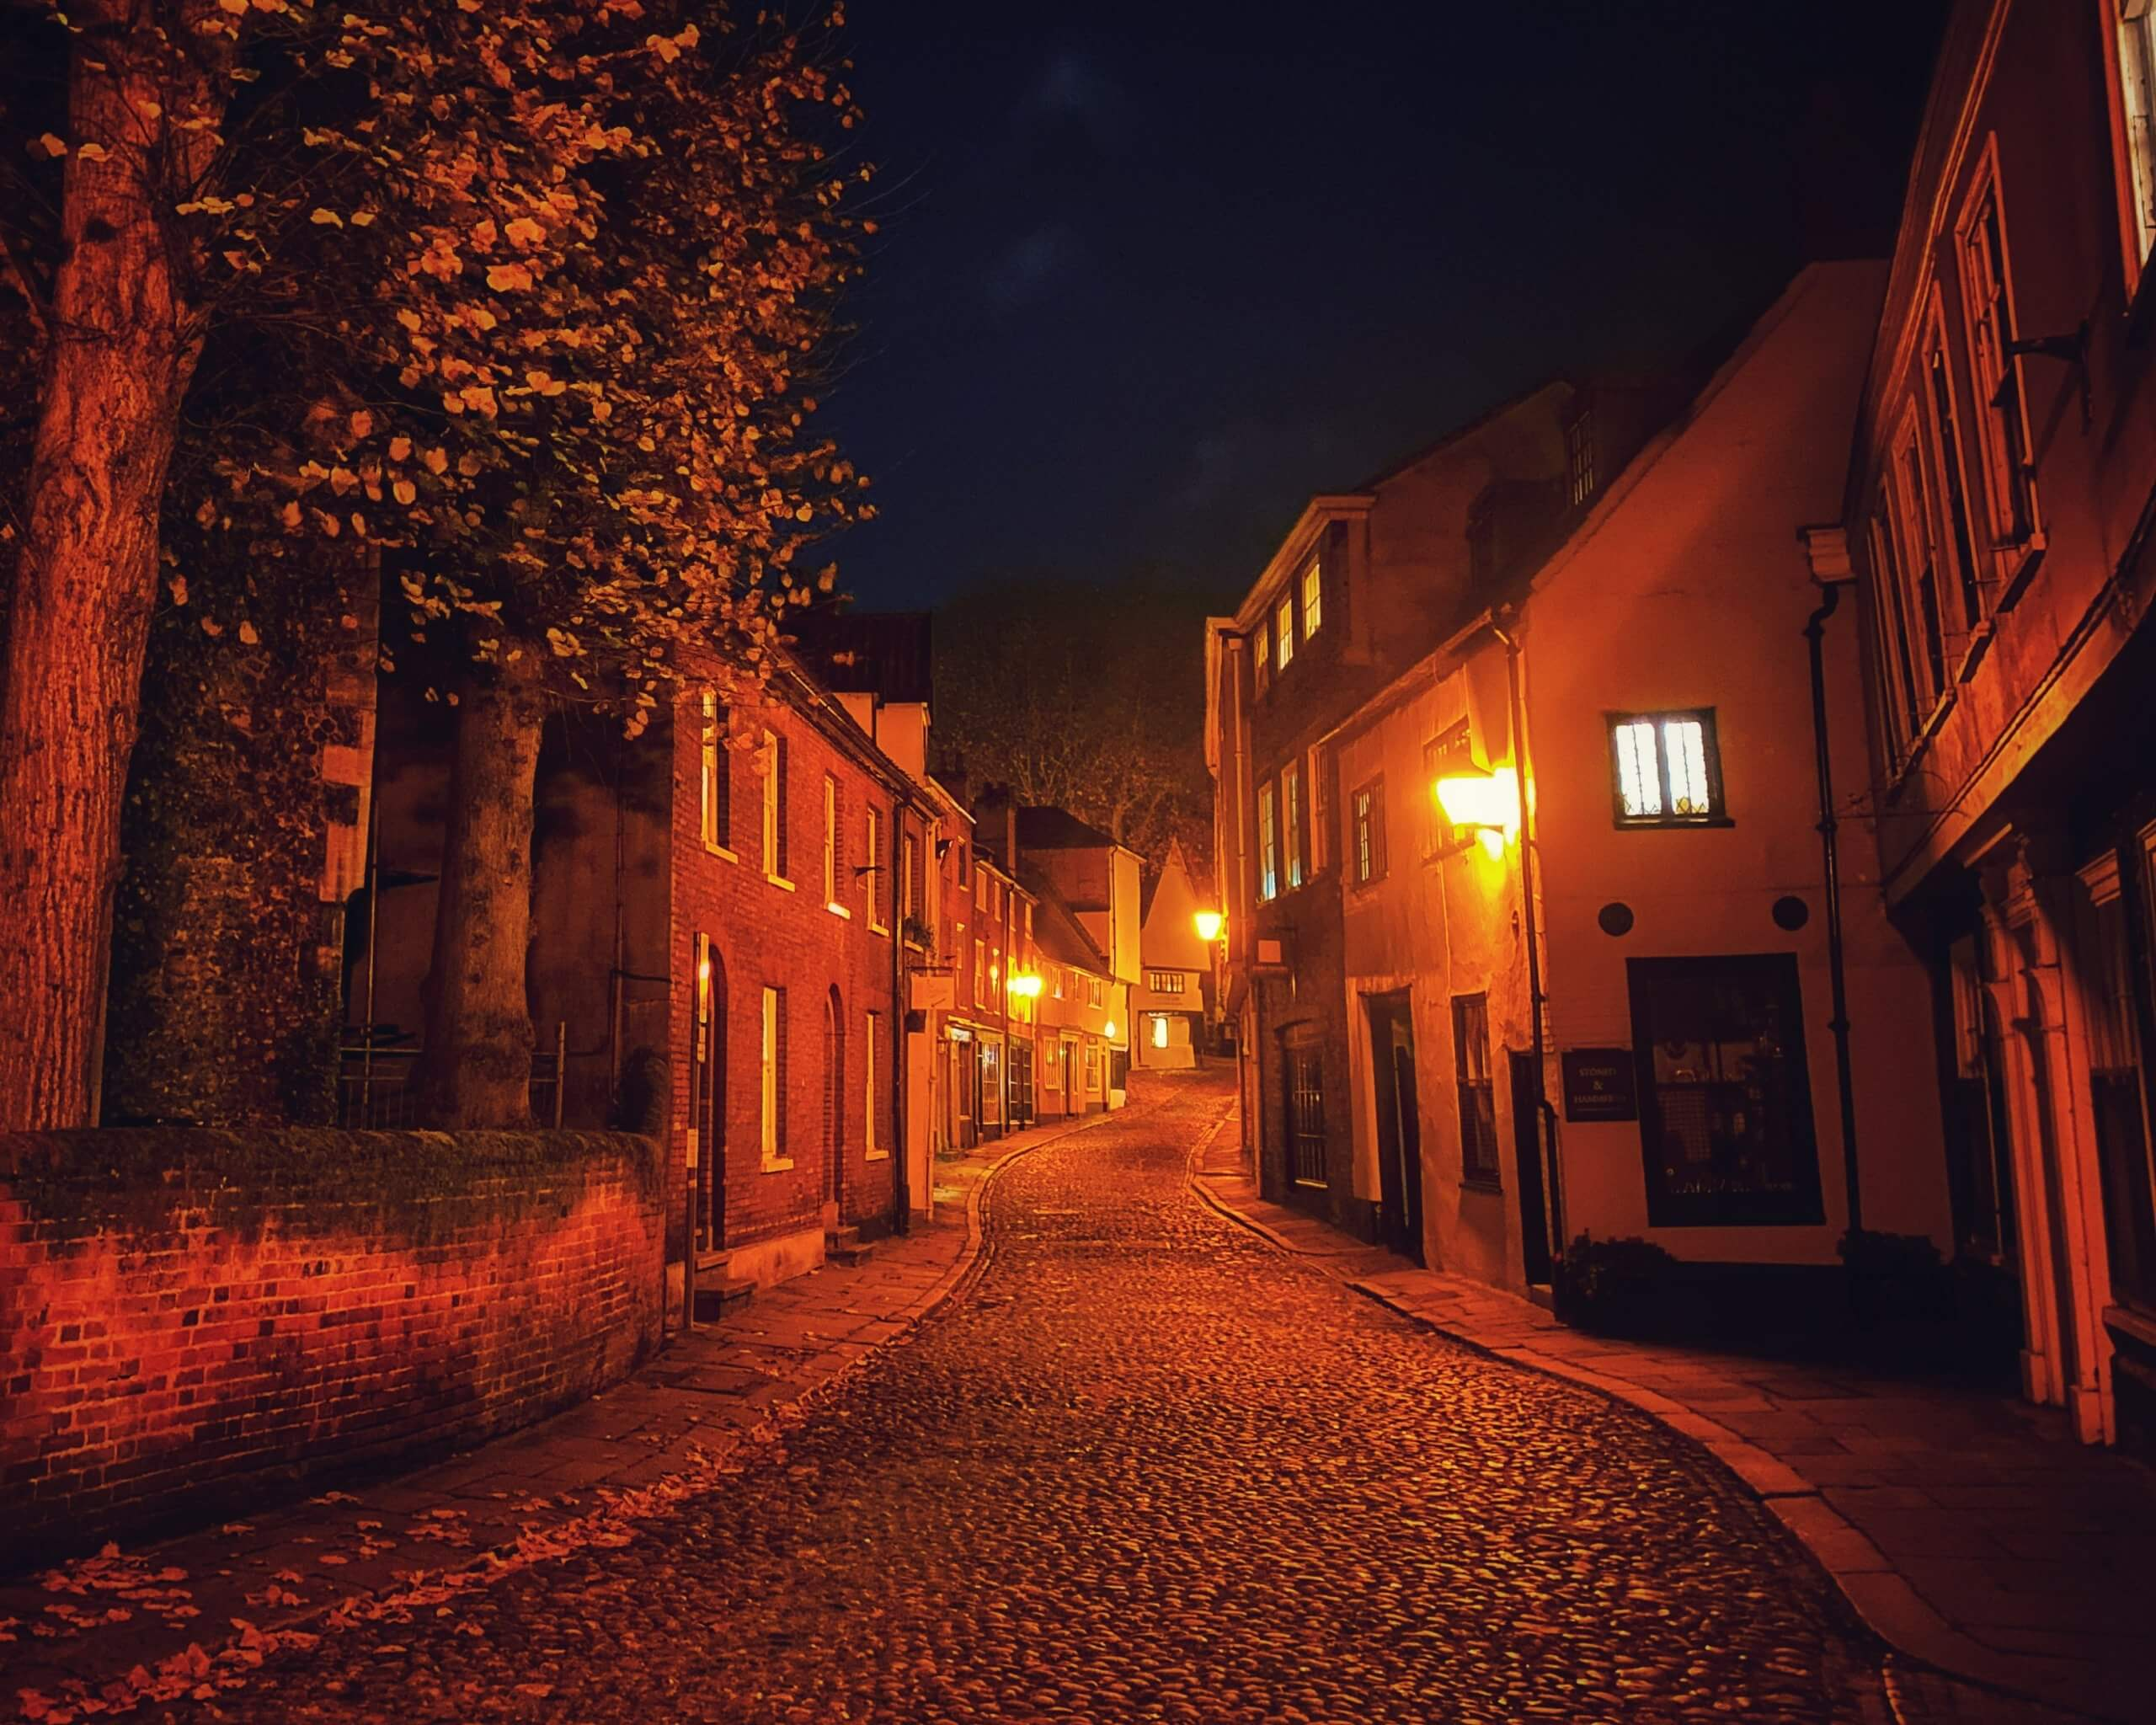 Cobbled street in Norwich, Norfolk, UK at night with red street lamps lighting the houses eerily